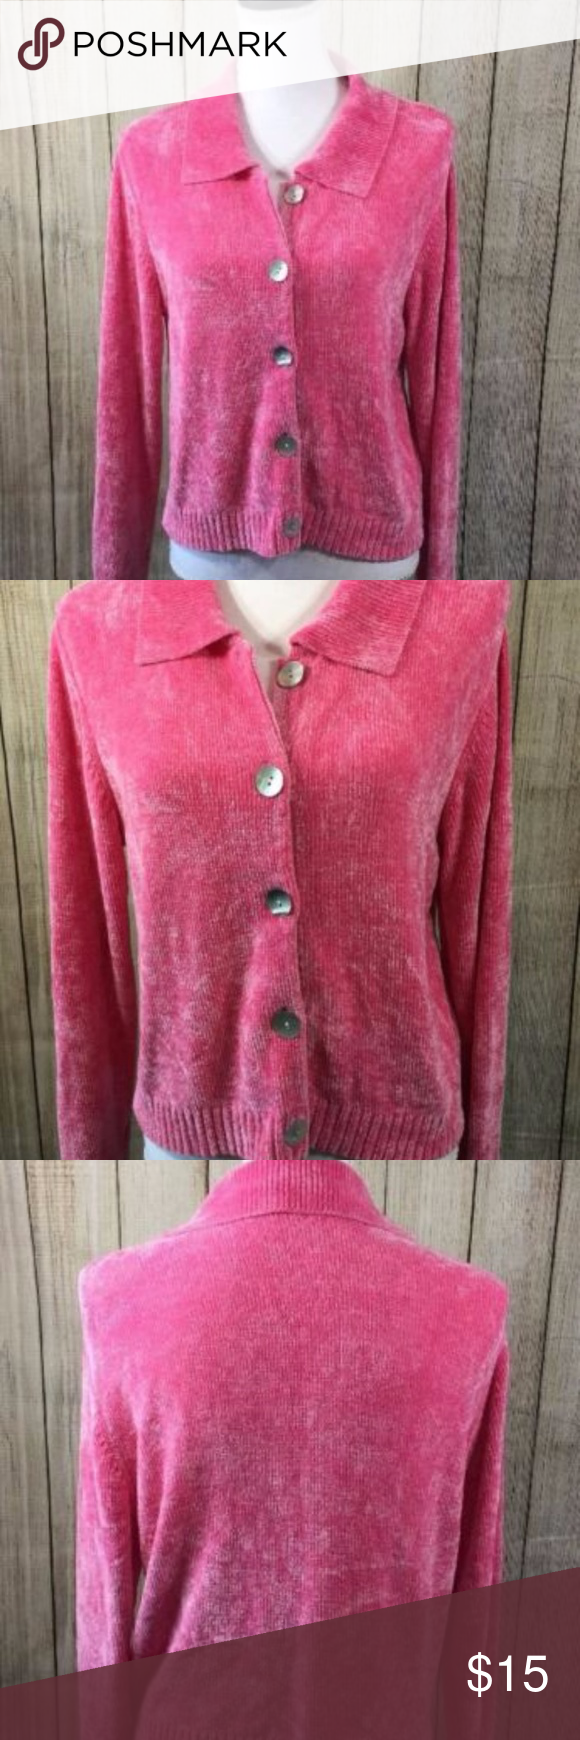 Boston Proper Woman's Soft Cardigan Top | Boston proper, Hot pink ...